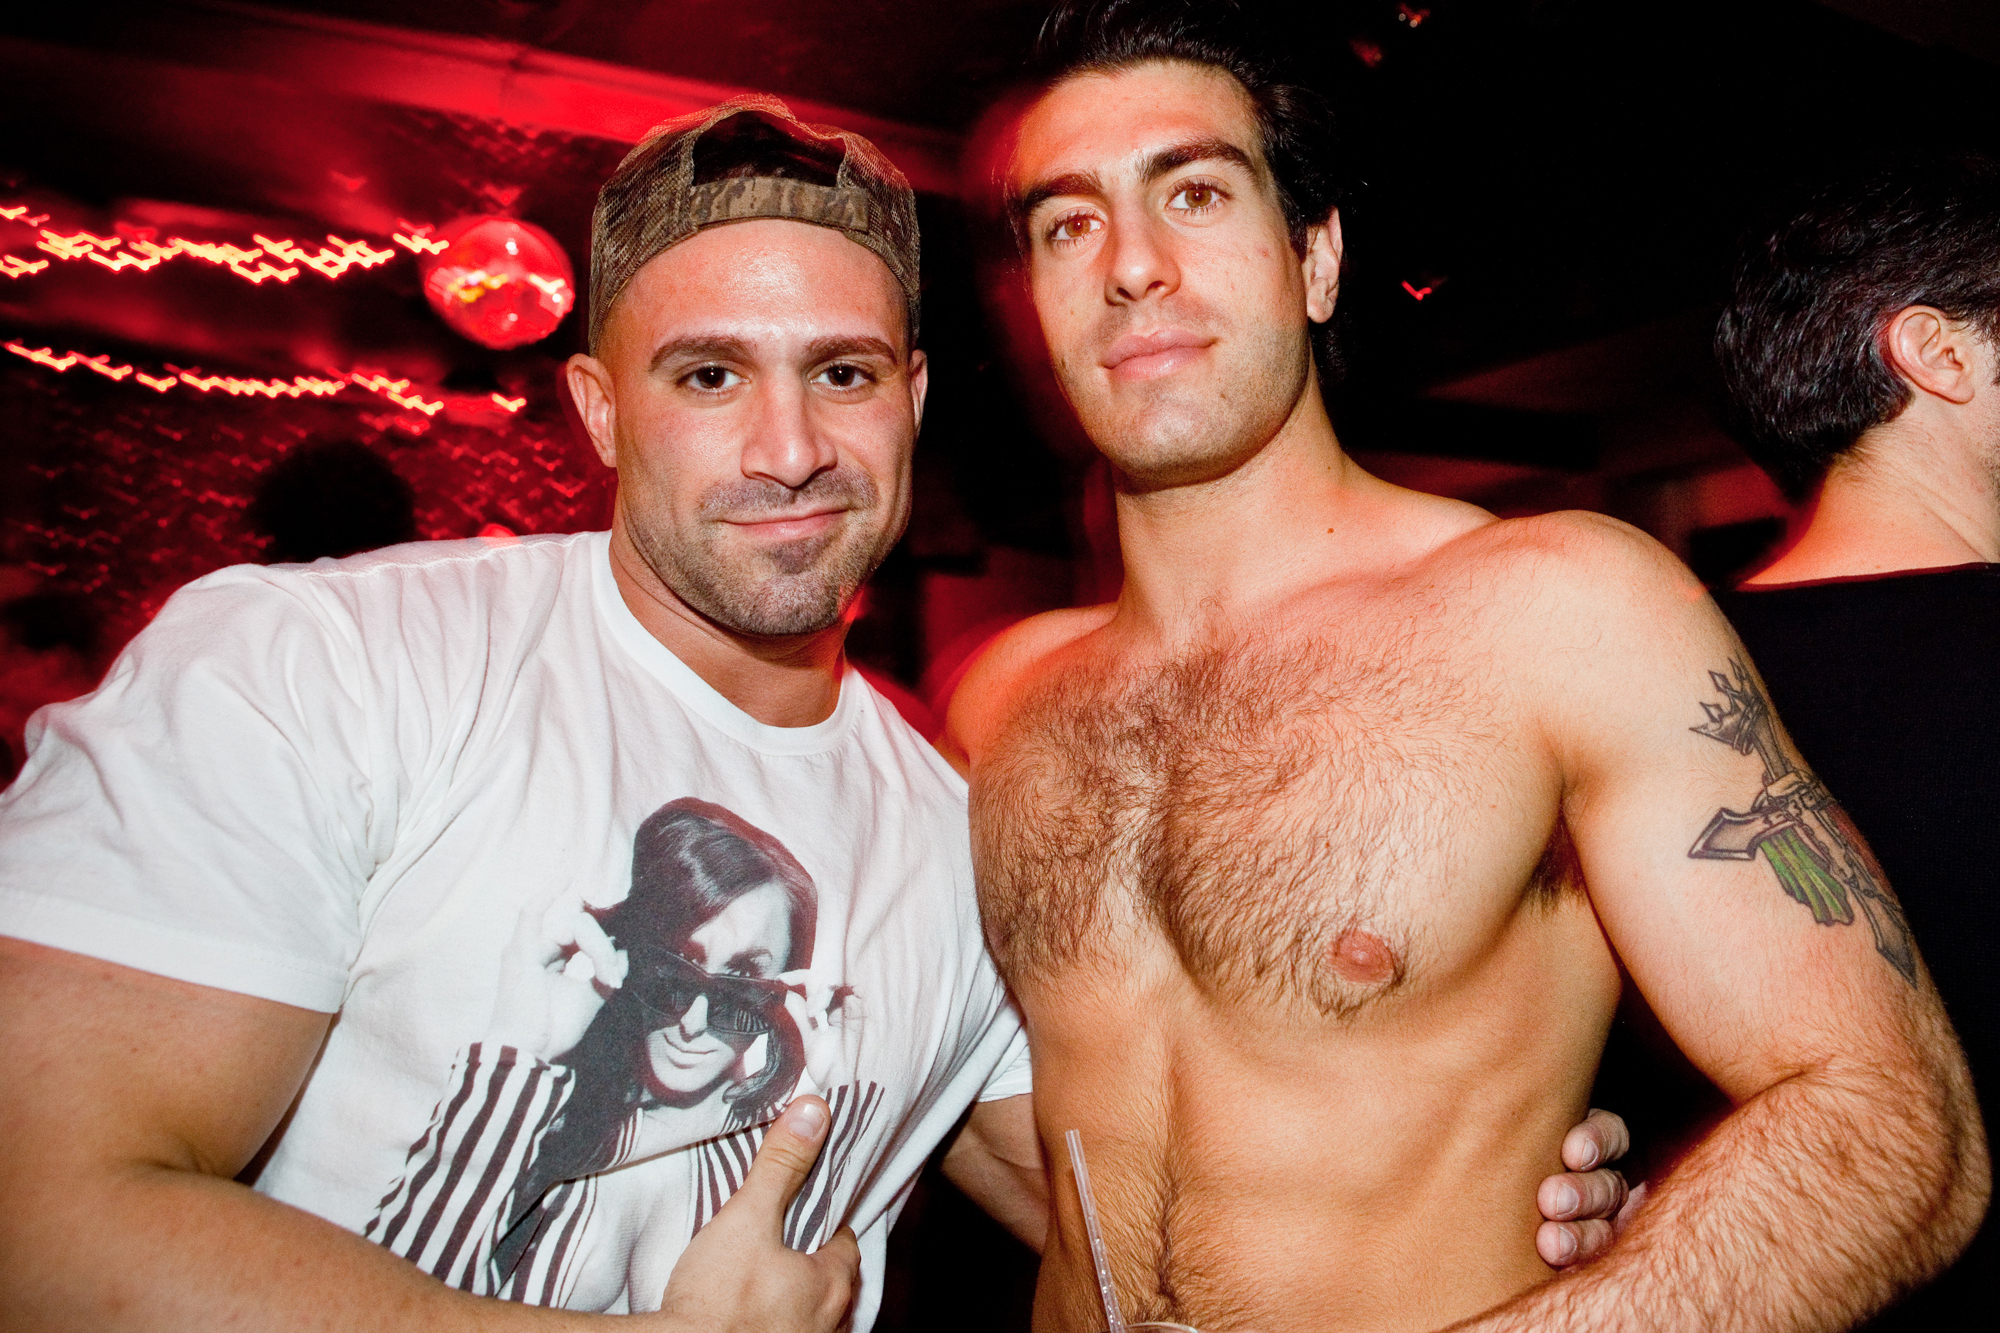 Cheap New York: Cheap gay and lesbian events